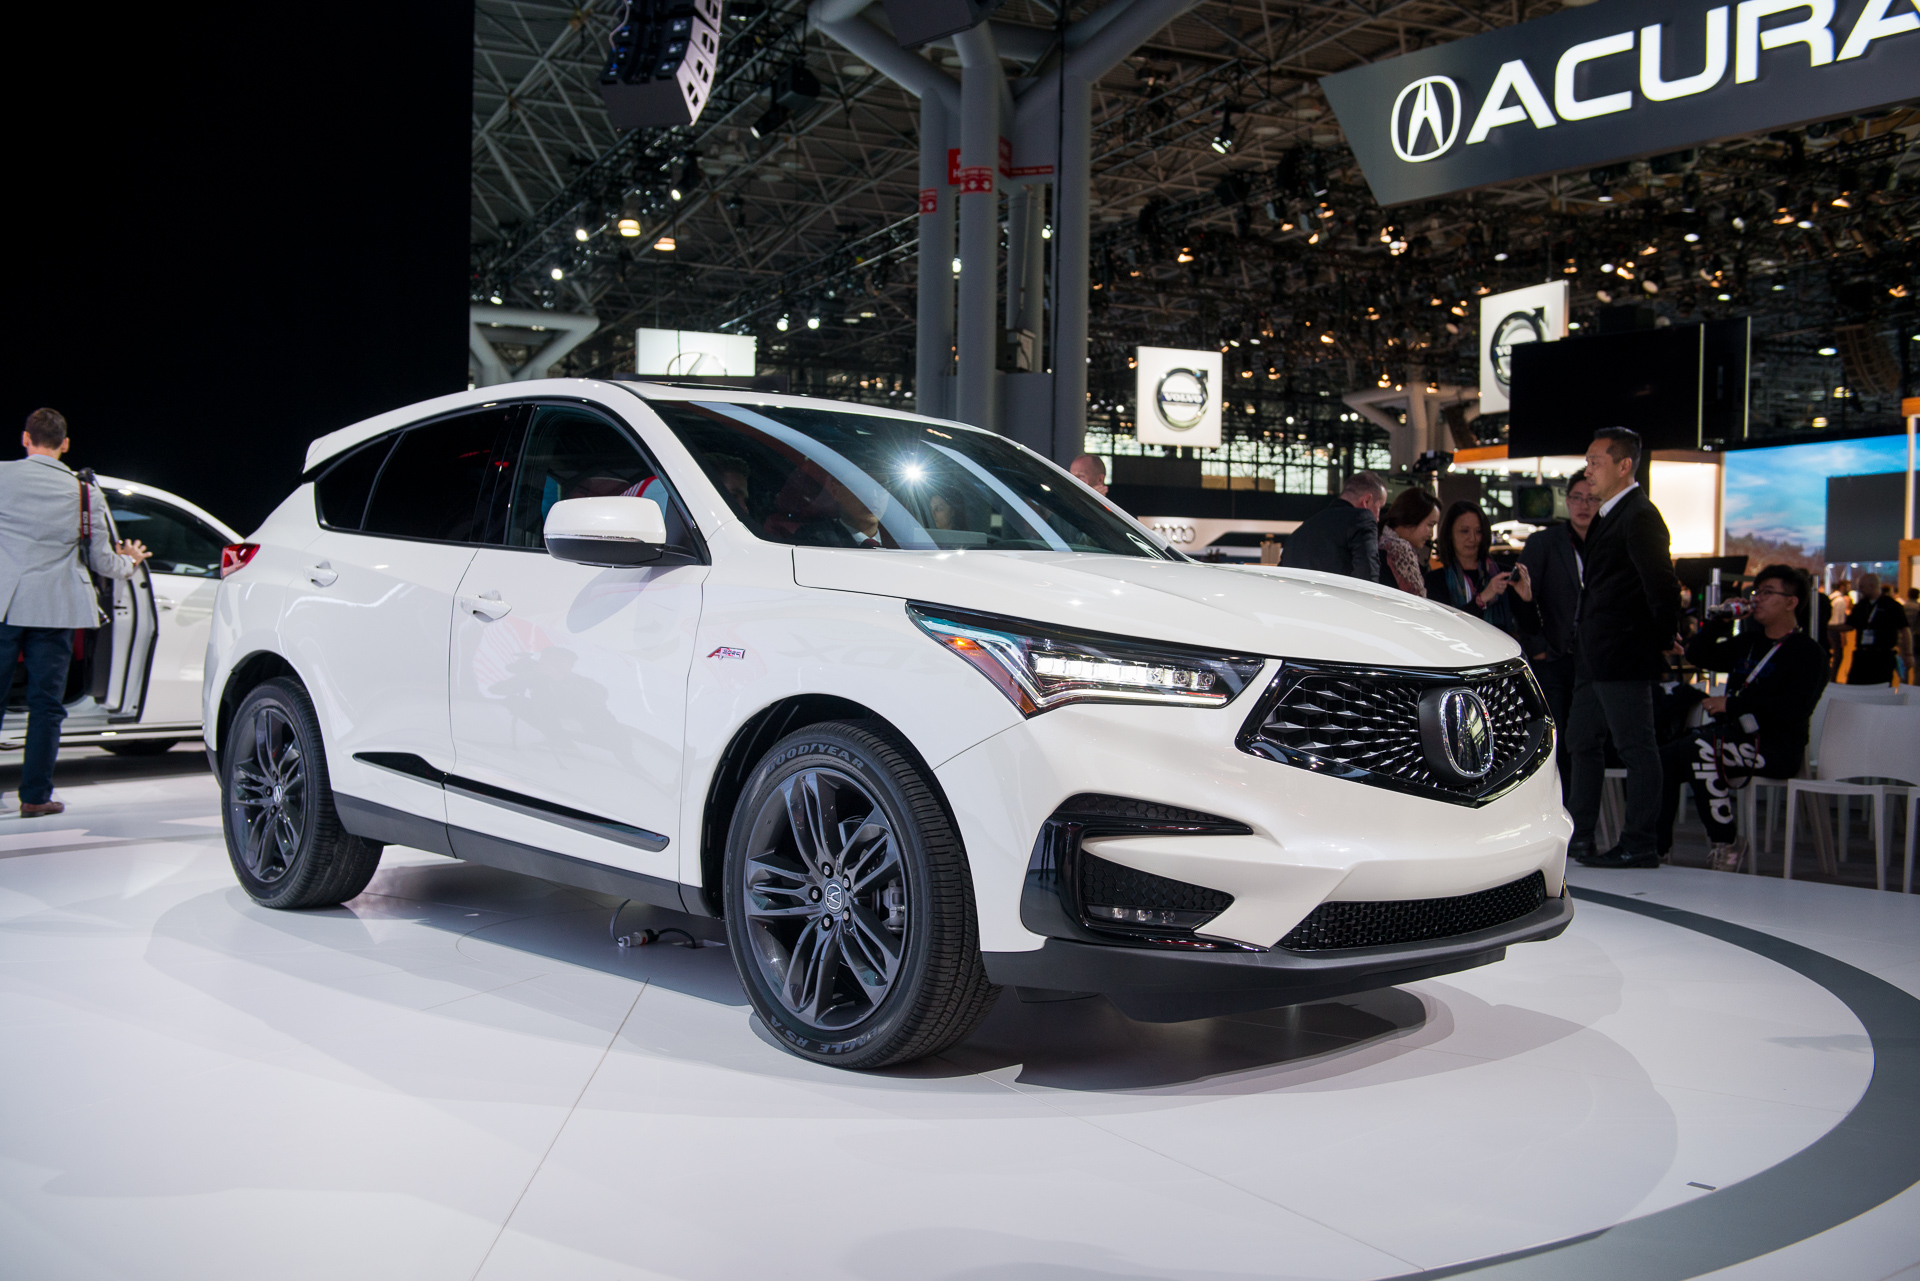 2019 Acura Rdx Gets 38 295 Base Price Tops Out Just